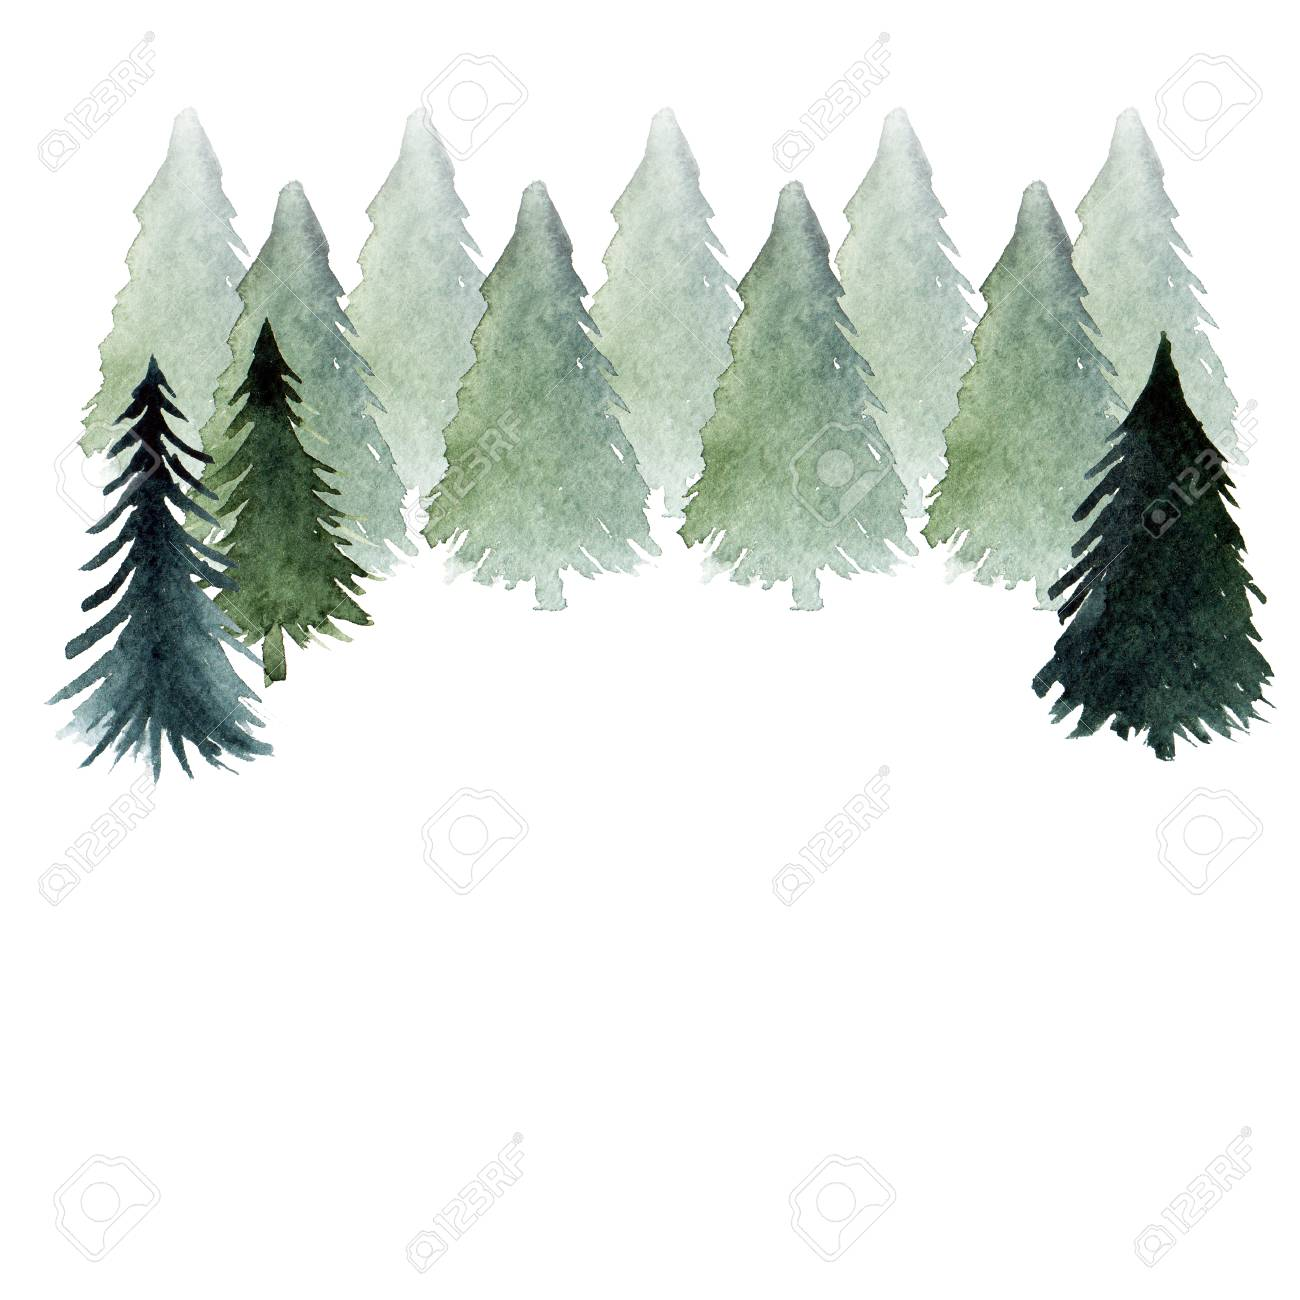 green fir tree forest isolated abstract watercolor free hand stock photo picture and royalty free image image 105215077 green fir tree forest isolated abstract watercolor free hand